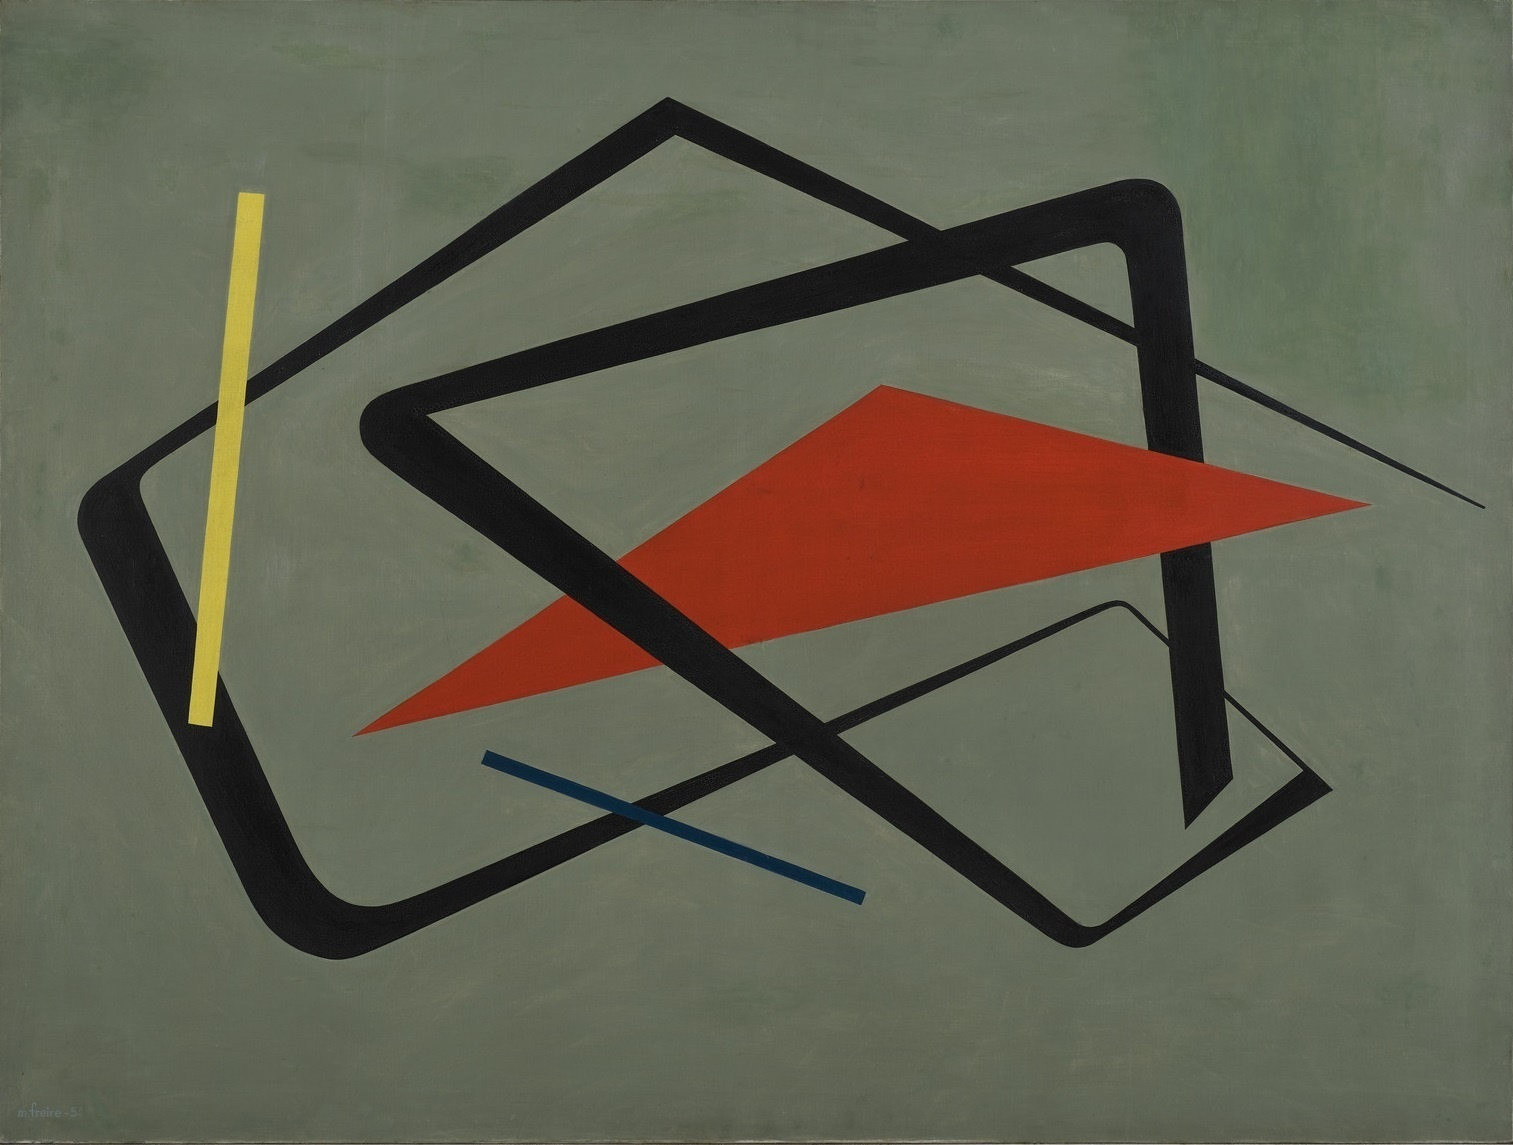 María Freire (Uruguayan, 1917–2015). Untitled. 1954. Oil on canvas, 36 1⁄4 × 48 1/16″ (92 × 122 cm). The Museum of Modern Art, New York. Promised gift of Patricia Phelps de Cisneros through the Latin American and Caribbean Fund in honor of Gabriel Pérez-Barreiro, 2016